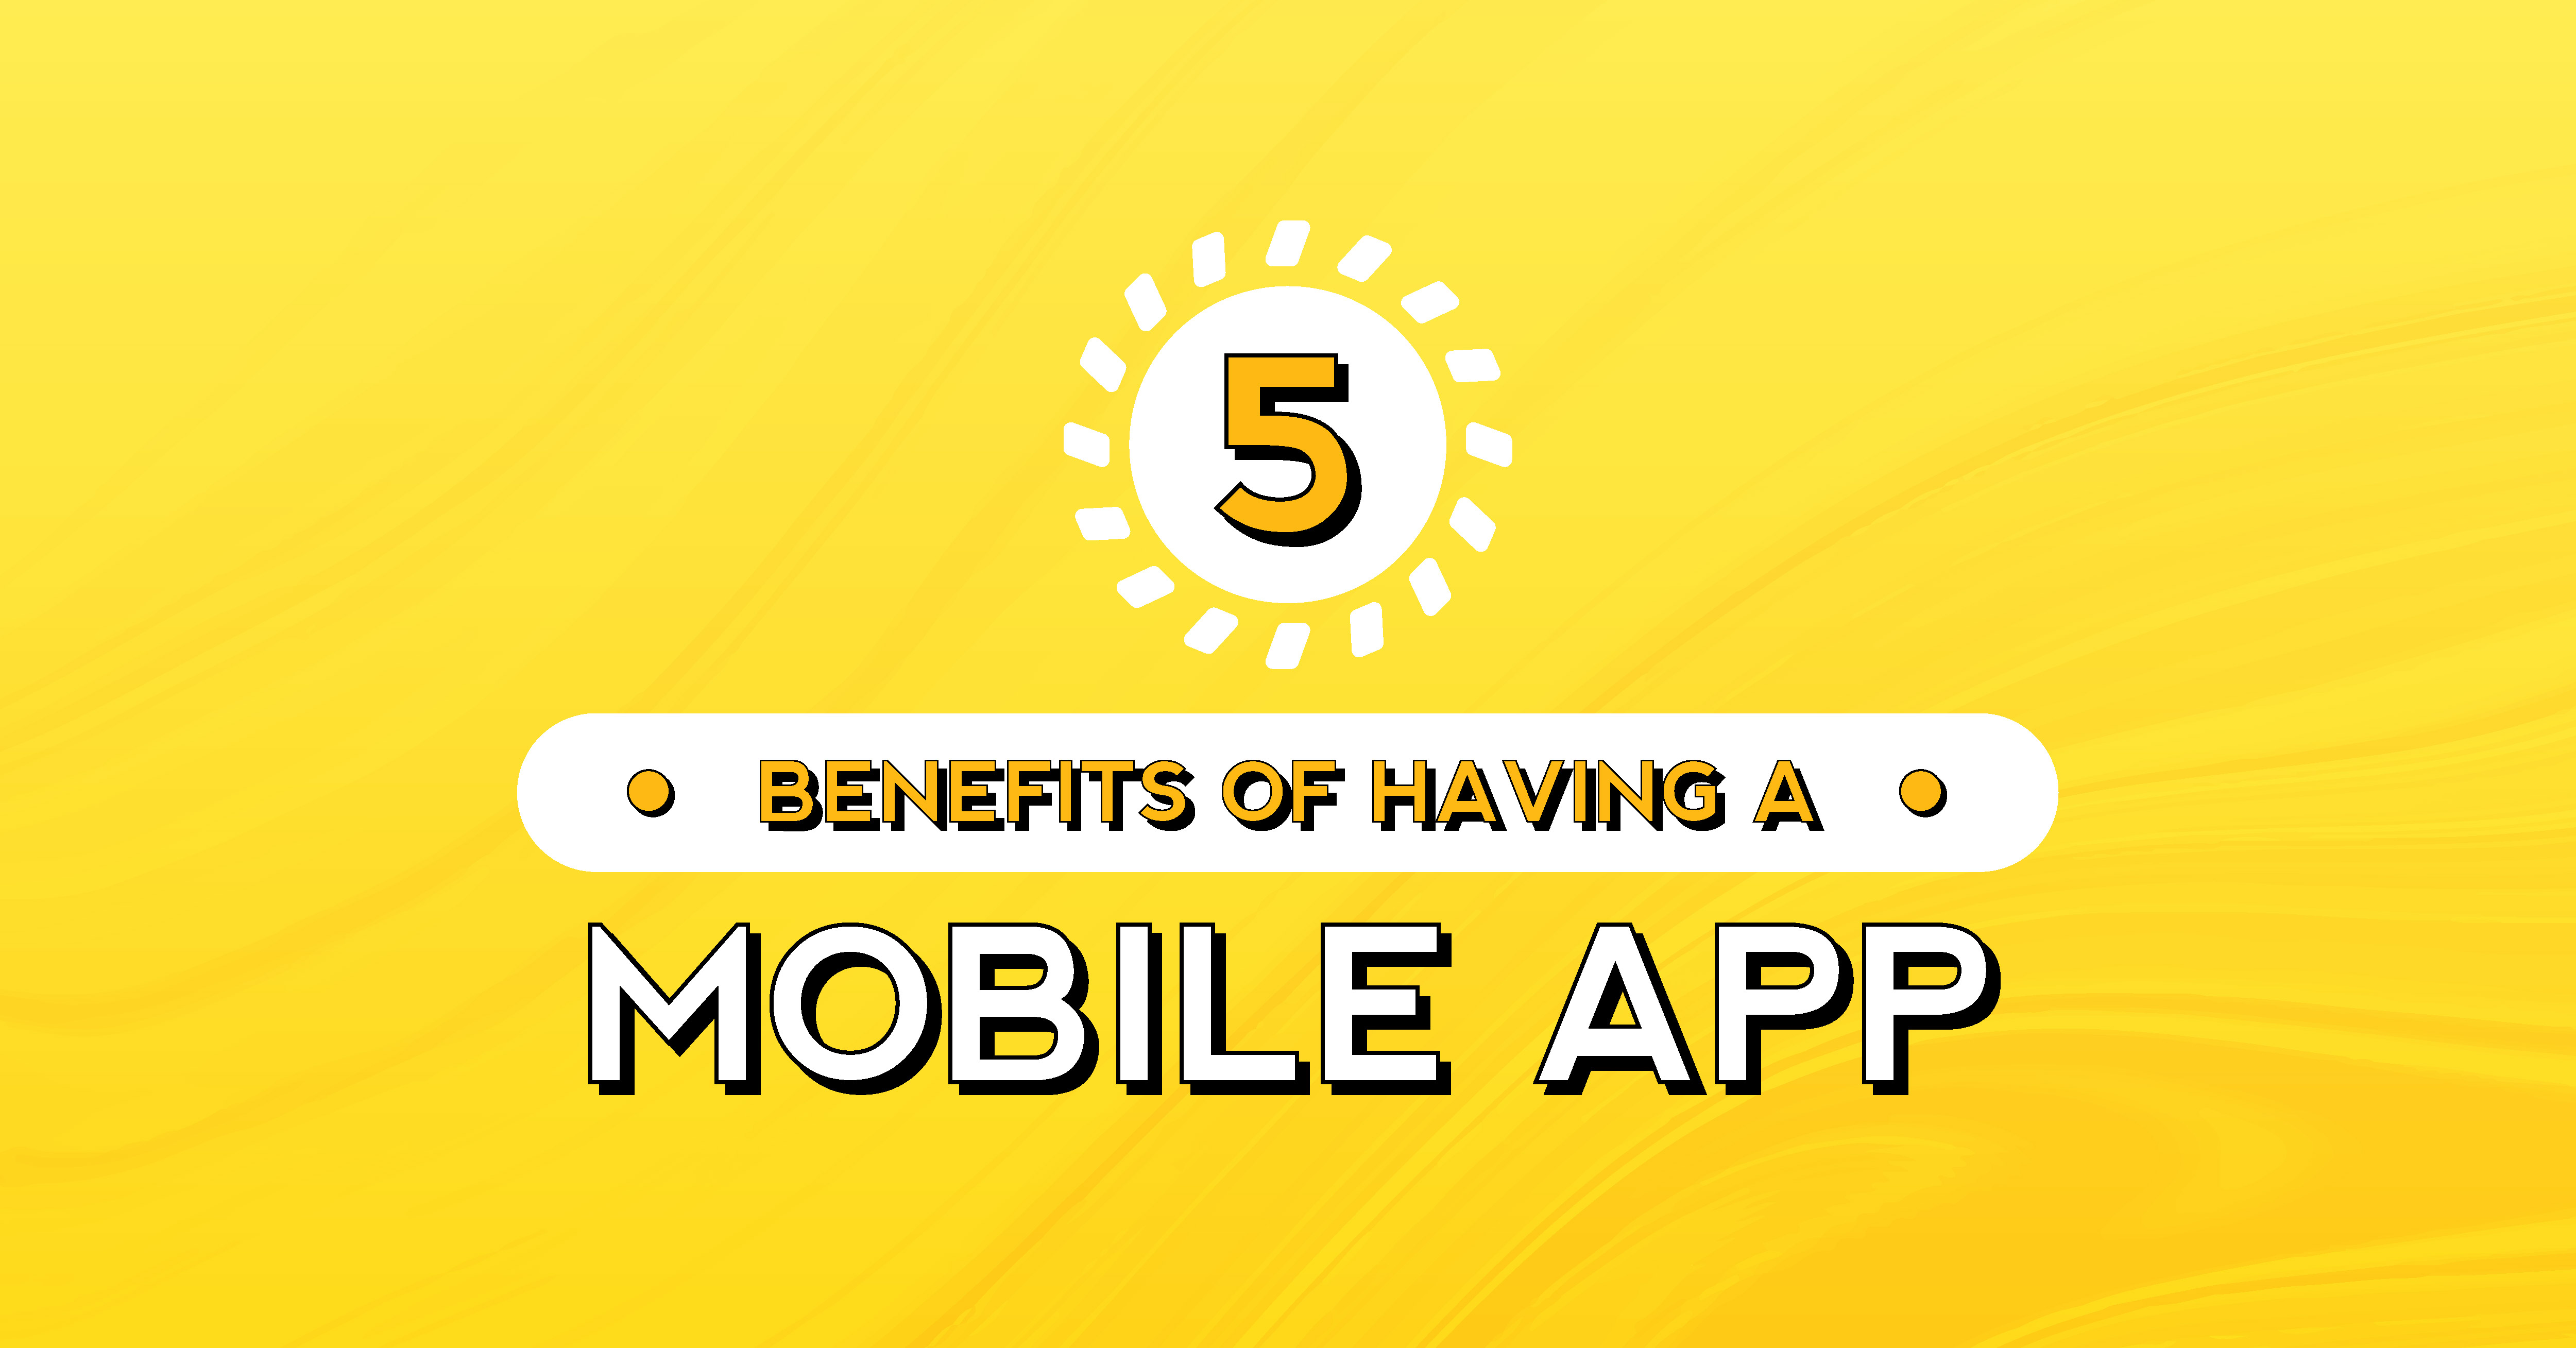 5 Benefits of Having a Mobile App